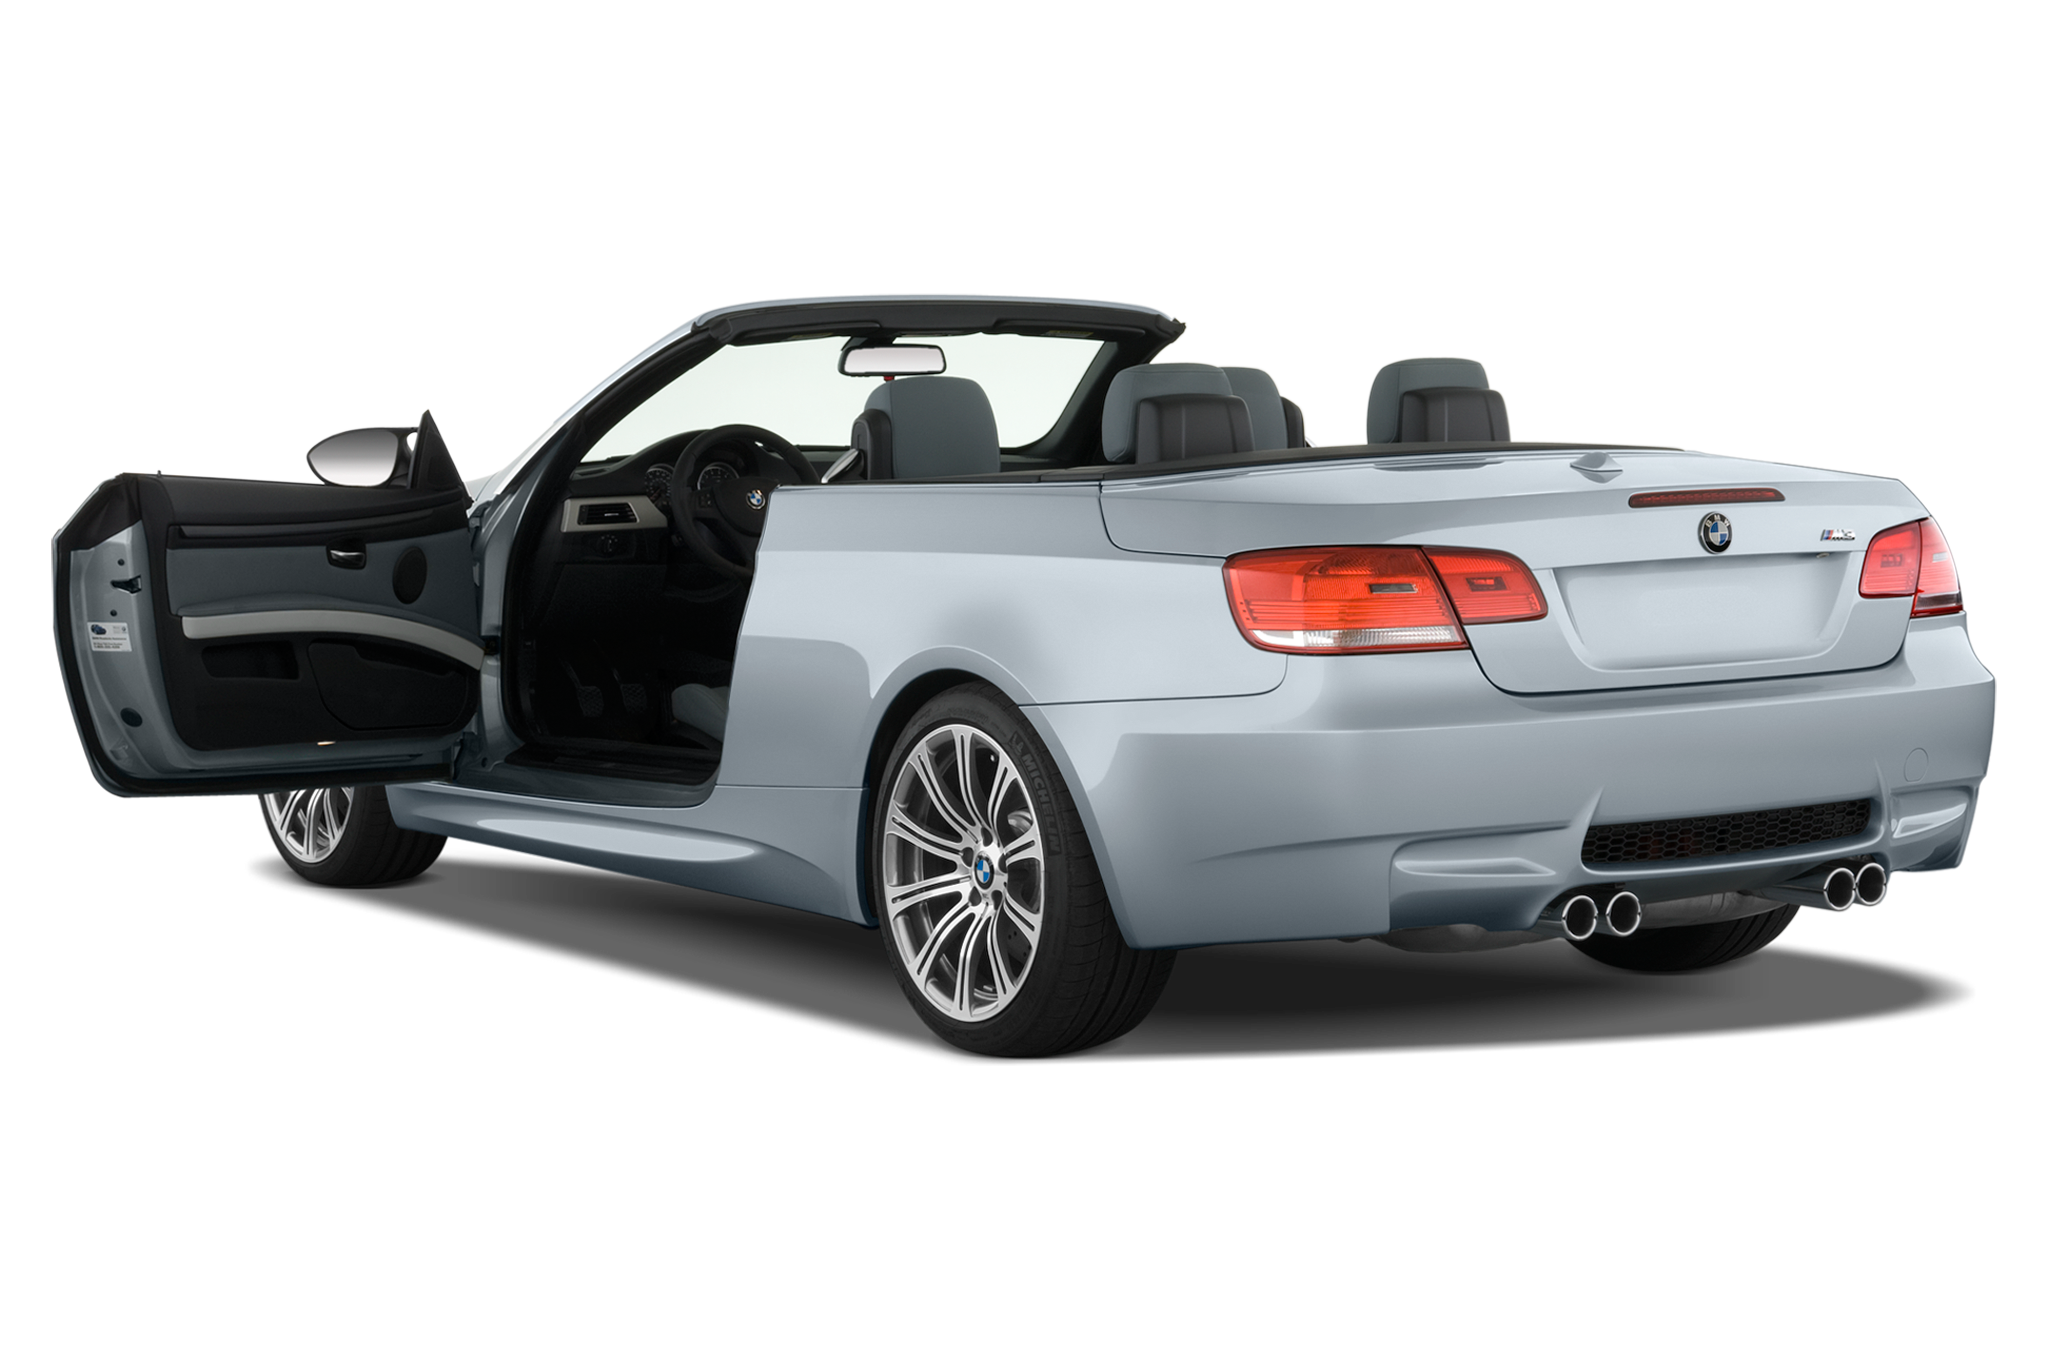 2010 bmw 335d bmw 3 series diesel sedan review. Black Bedroom Furniture Sets. Home Design Ideas